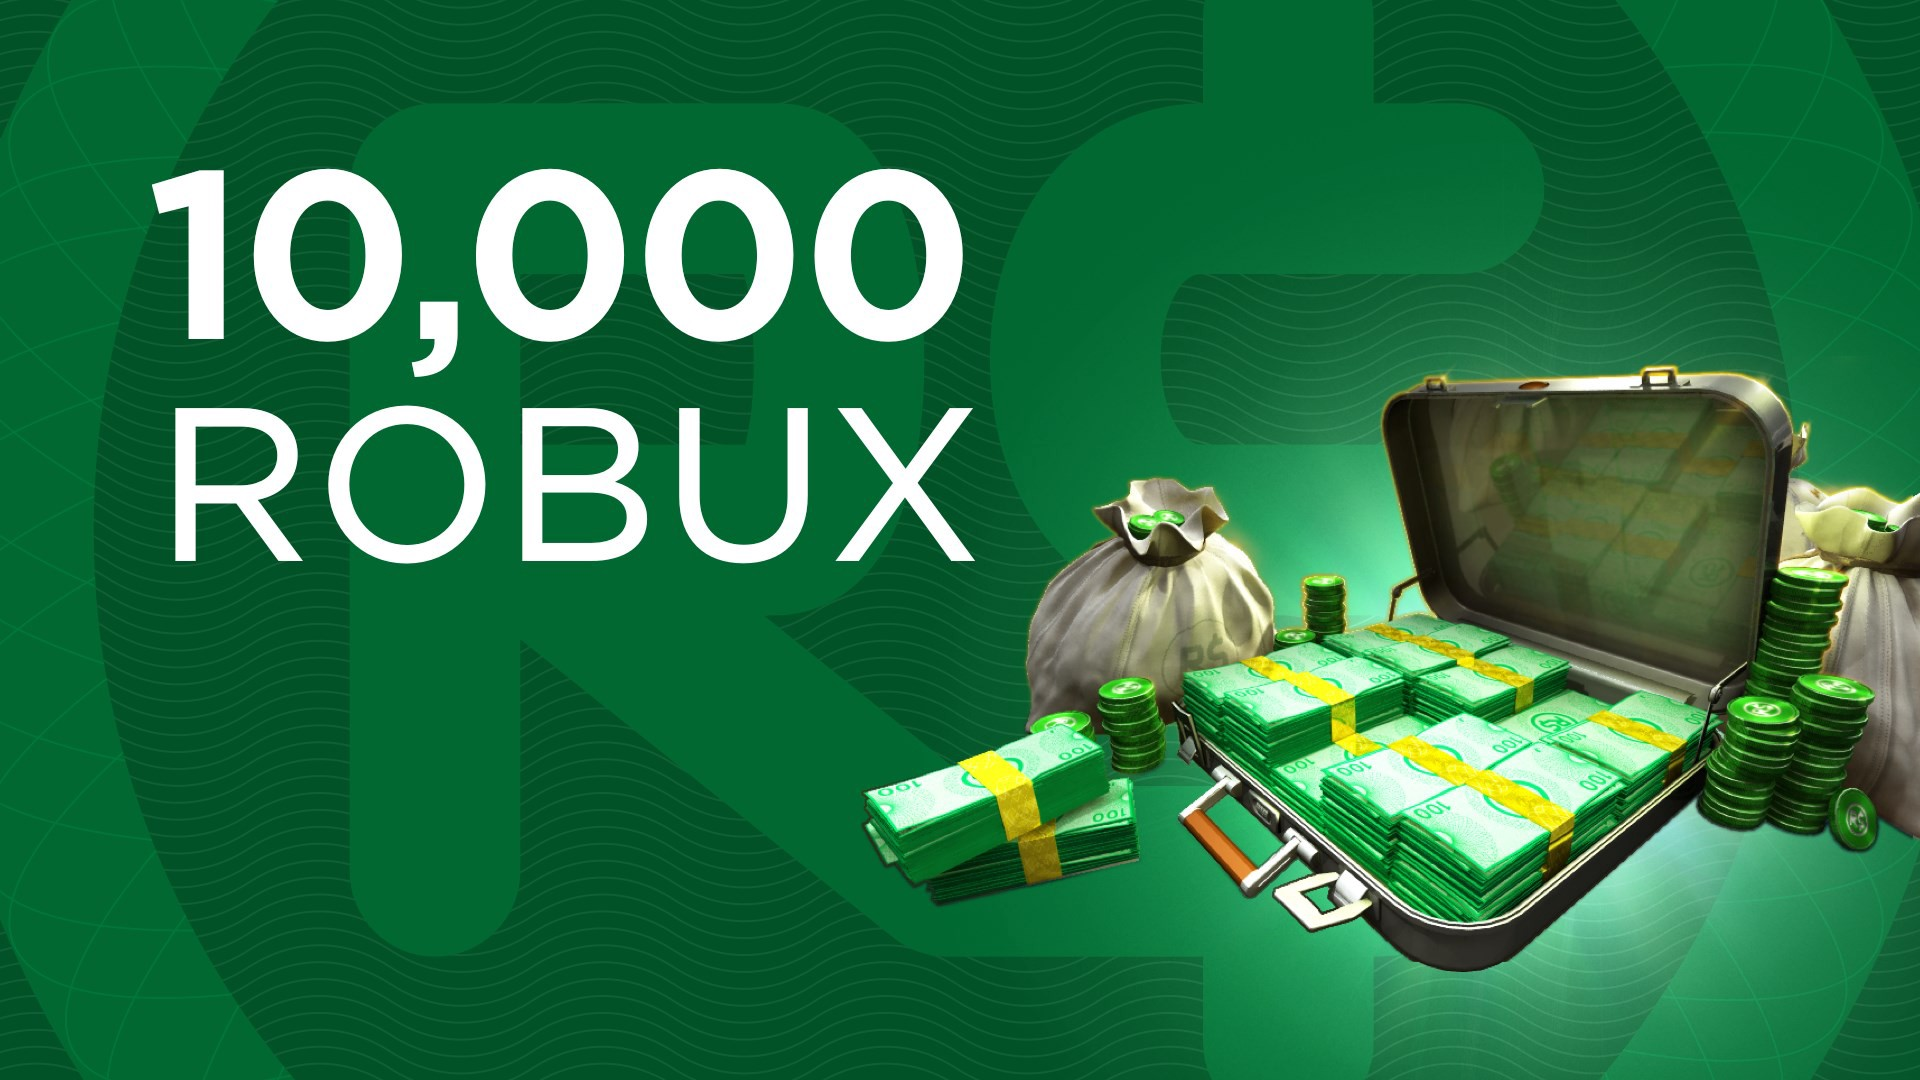 2 Ways To Get Robux On Roblox The First Way Using Your